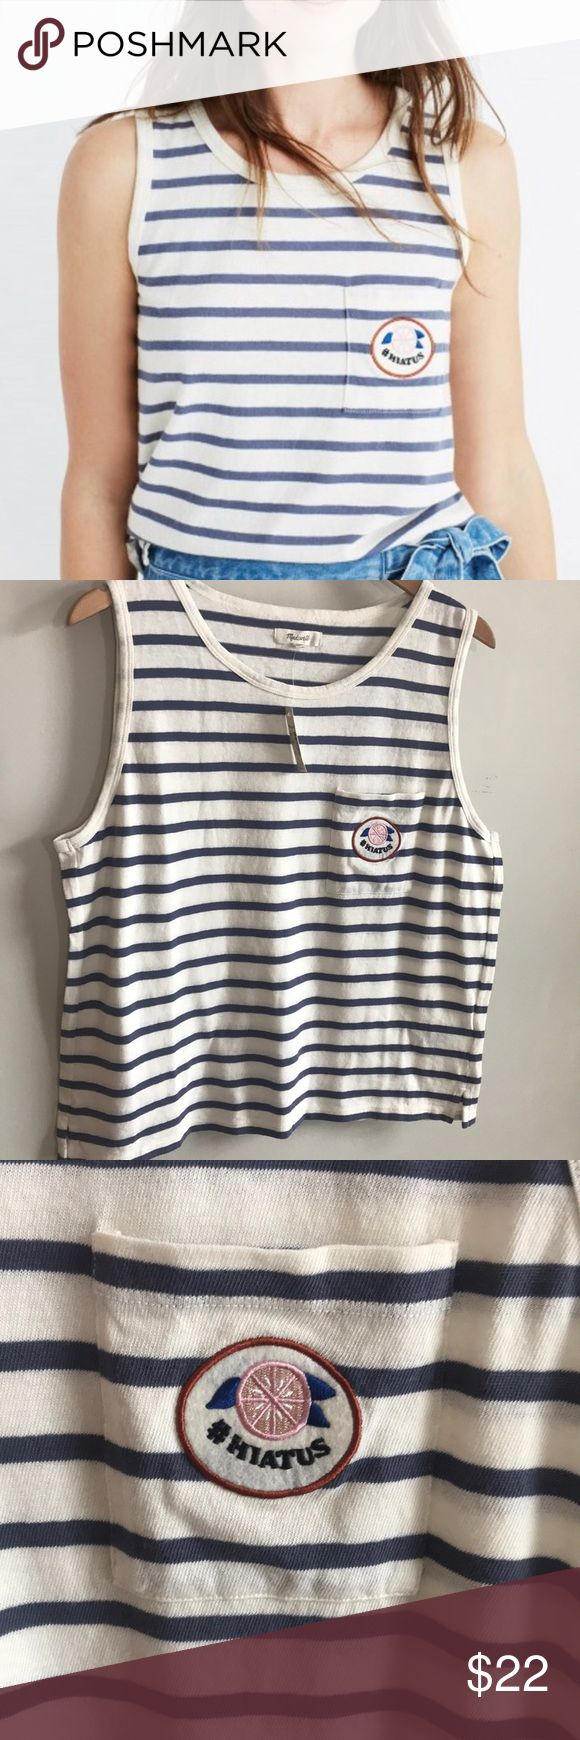 🆕 [Madewell] Striped Hiatus Tank BNWT  An easy striped tank with an embroidered felt patch inspired by vintage French fruit stickers (let's just say our head designer has a low-key obsession). Destined for your next Summer Friday #hiatus.  True to size. Cotton jersey. Machine wash. Import. Item G6625. Madewell Tops Tank Tops